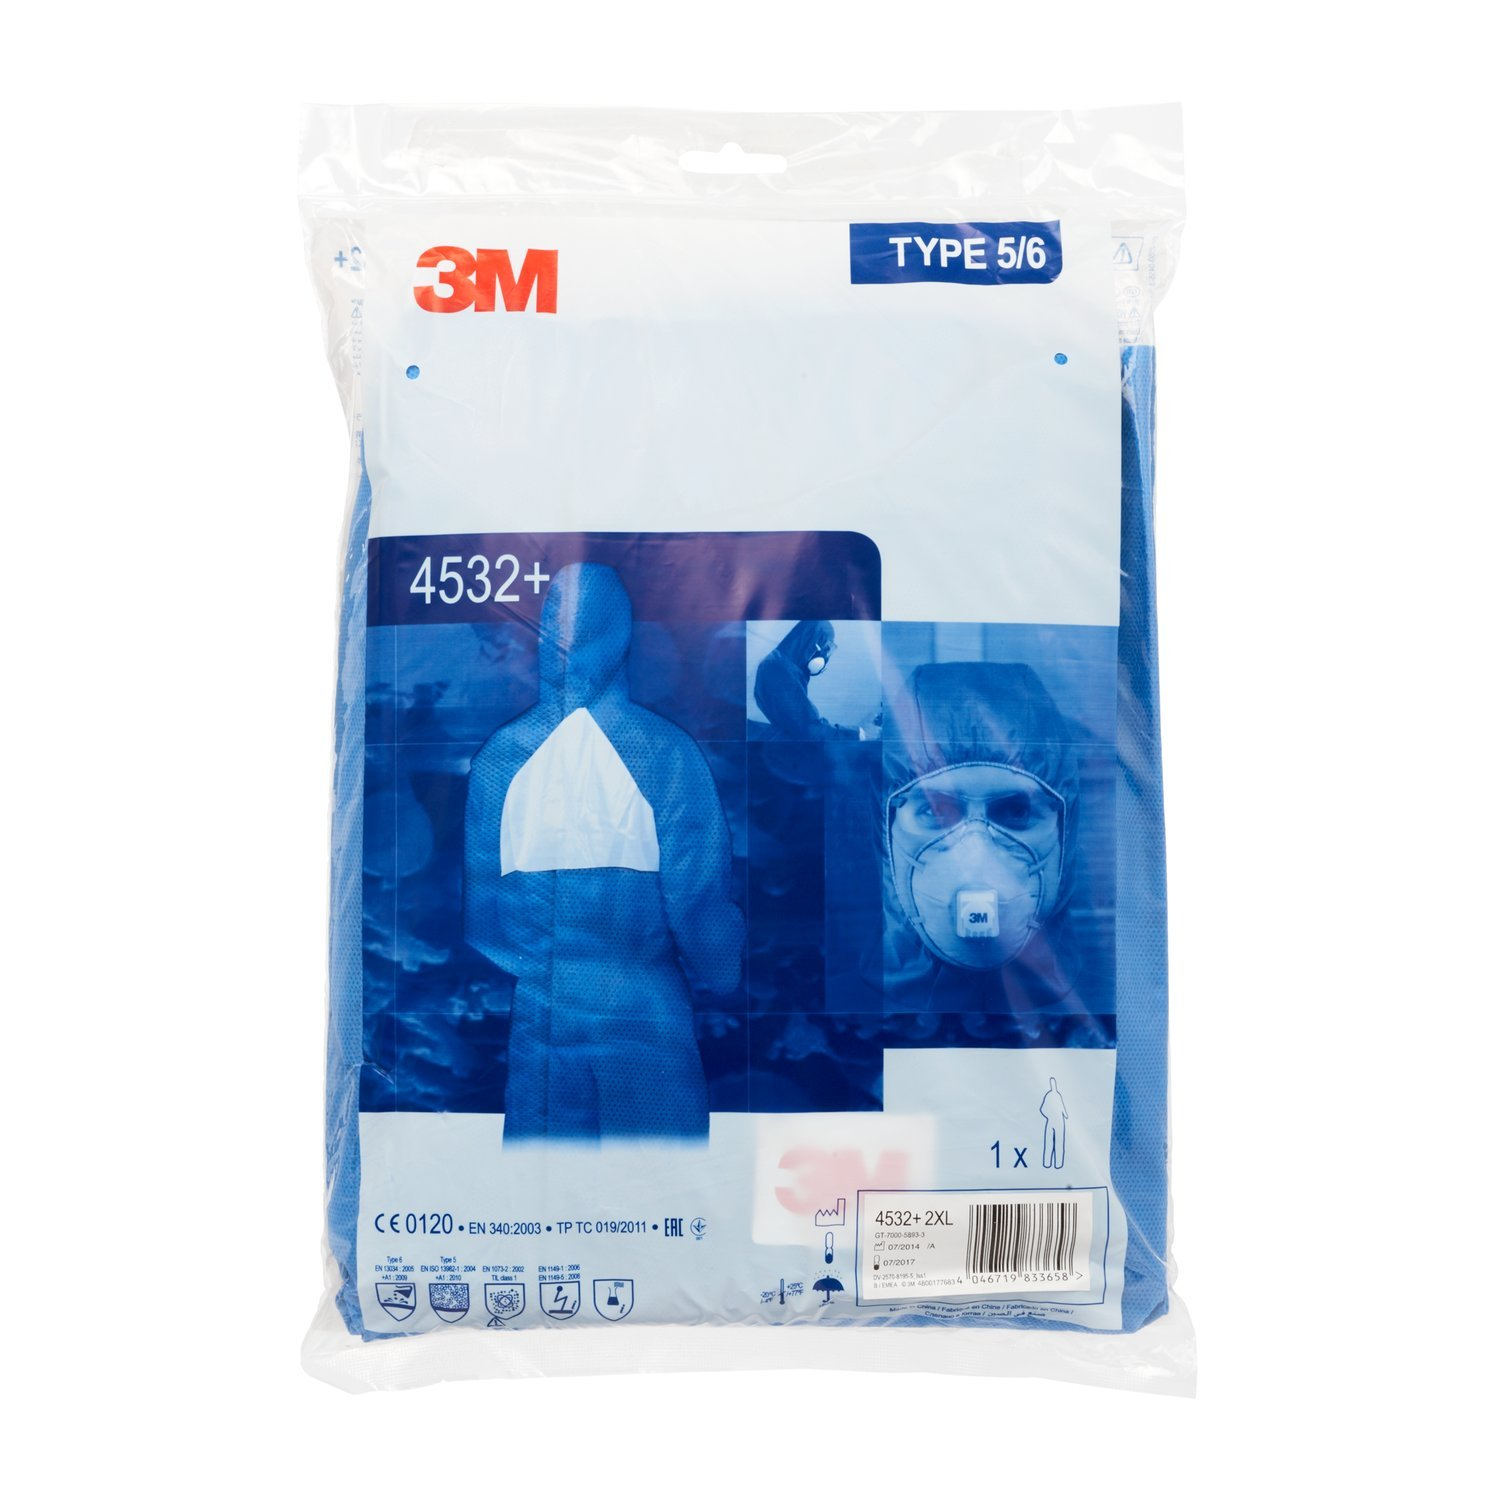 3M Protective Coverall Blue 4532 B-2XL